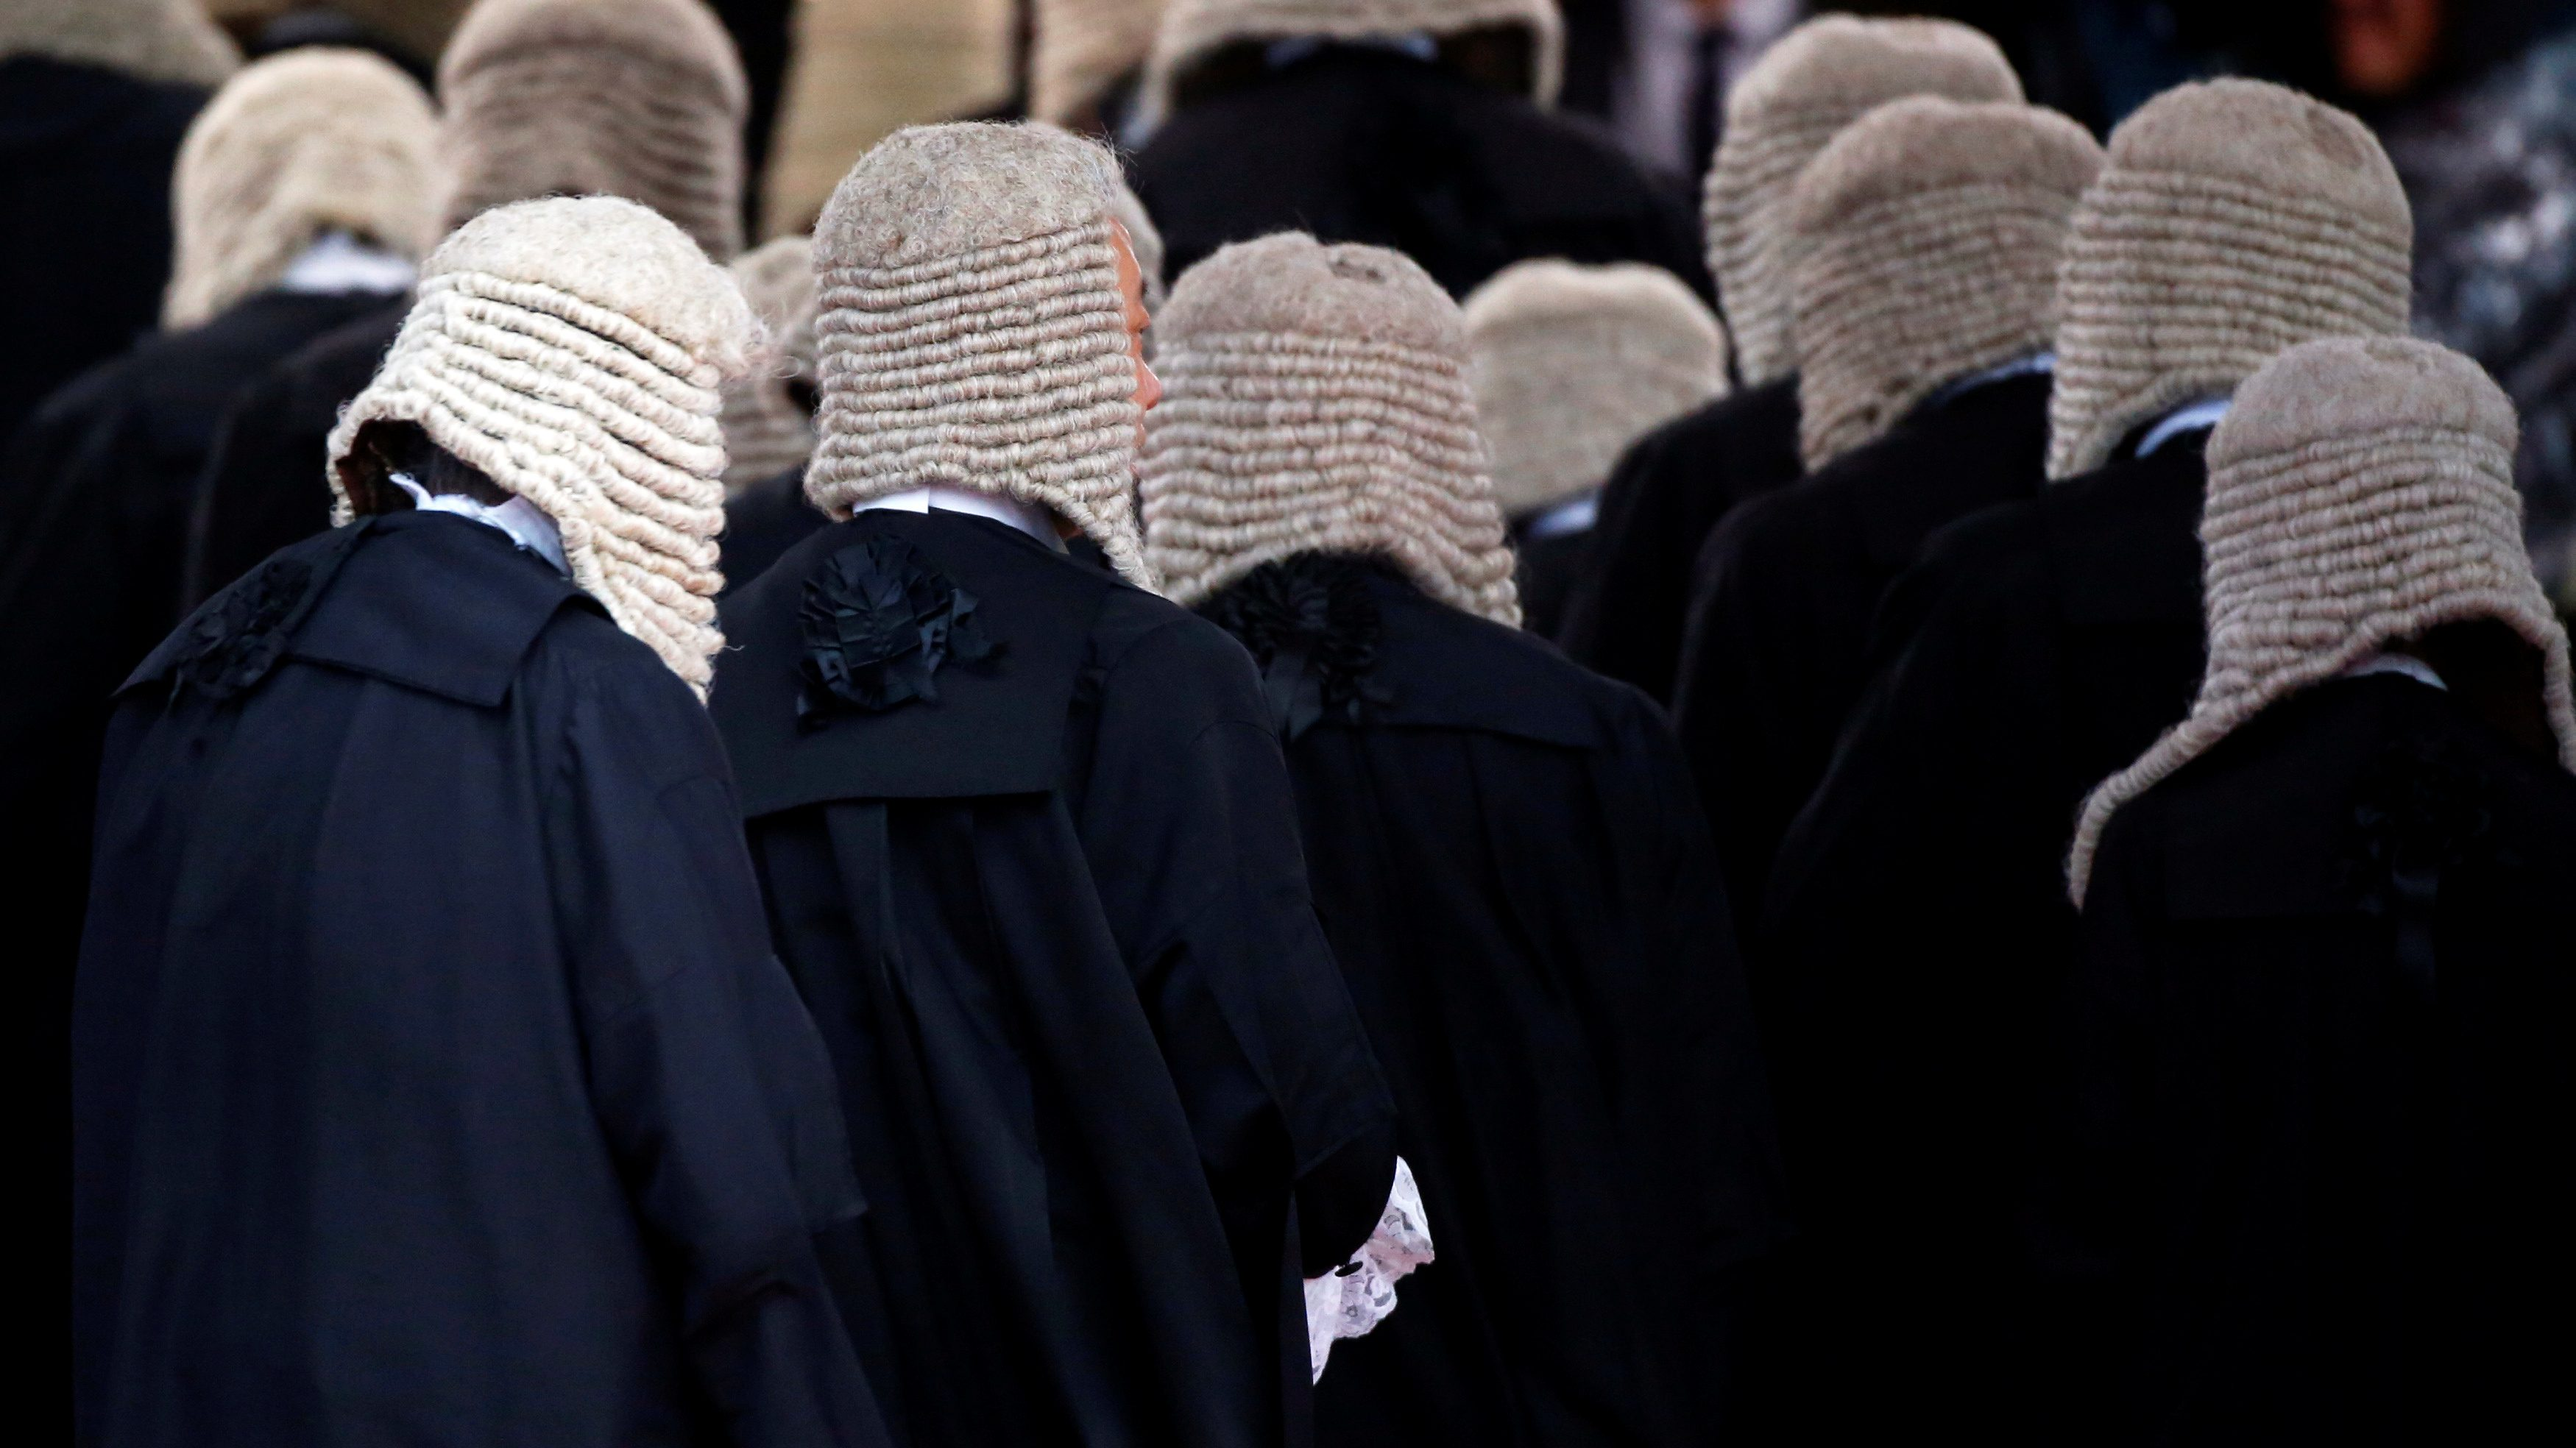 Judges wearing wigs attend a ceremony to mark the beginning of the legal year in Hong Kong, China January 8, 2018.